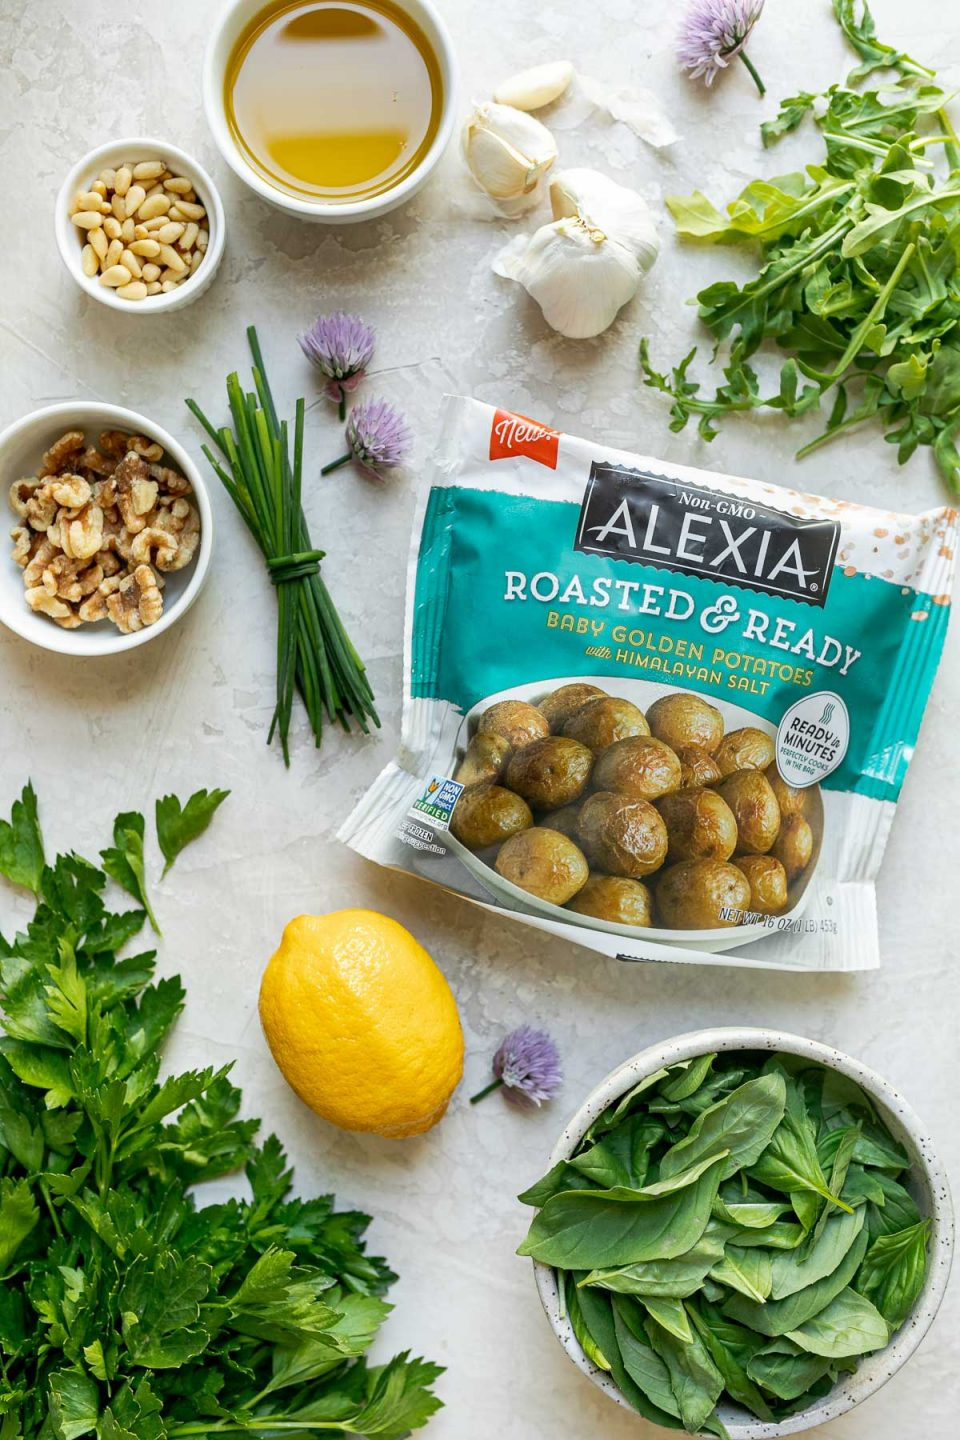 Green goddess pesto potato salad ingredients arranged on a white surface – Alexia Roasted & Ready Baby Golden Potatoes, extra virgin olive oil, baby arugula, chives, lemon zest & juice, garlic, walnuts, pine nuts, basil leaves, parsley leaves, kosher salt, & crushed red pepper flakes.